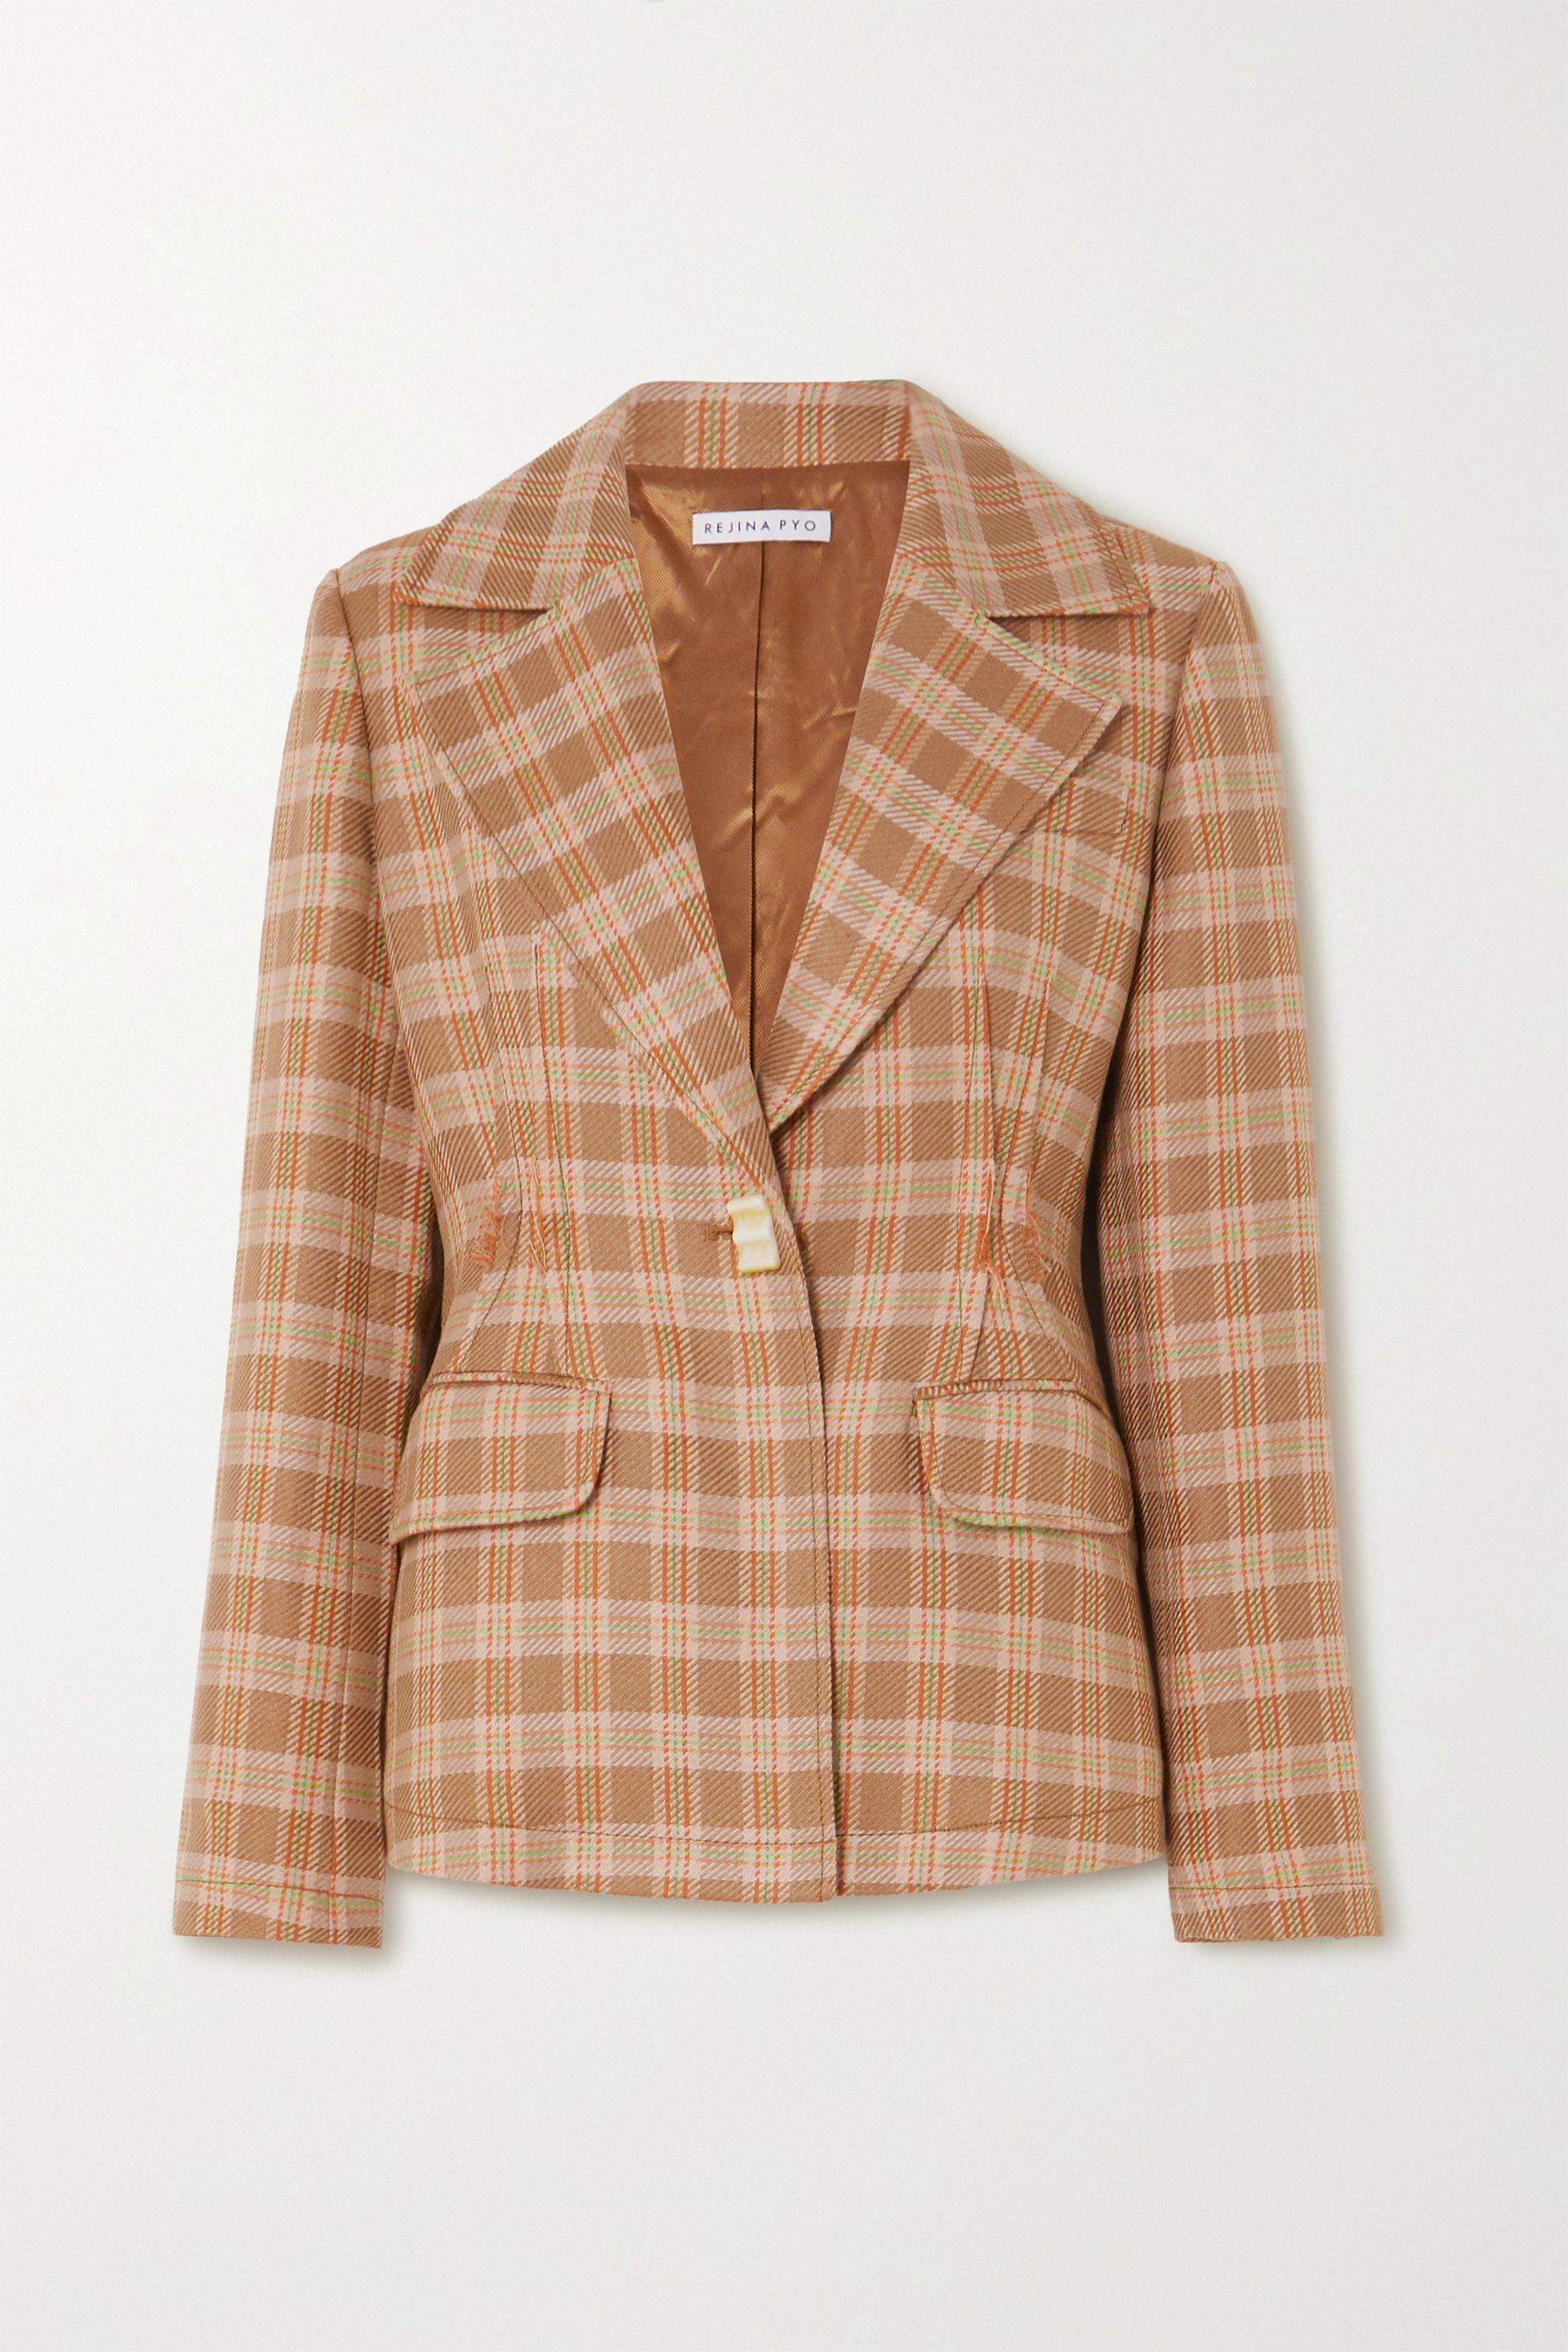 REJINA PYO + NET SUSTAIN Edith checked tweed blazer